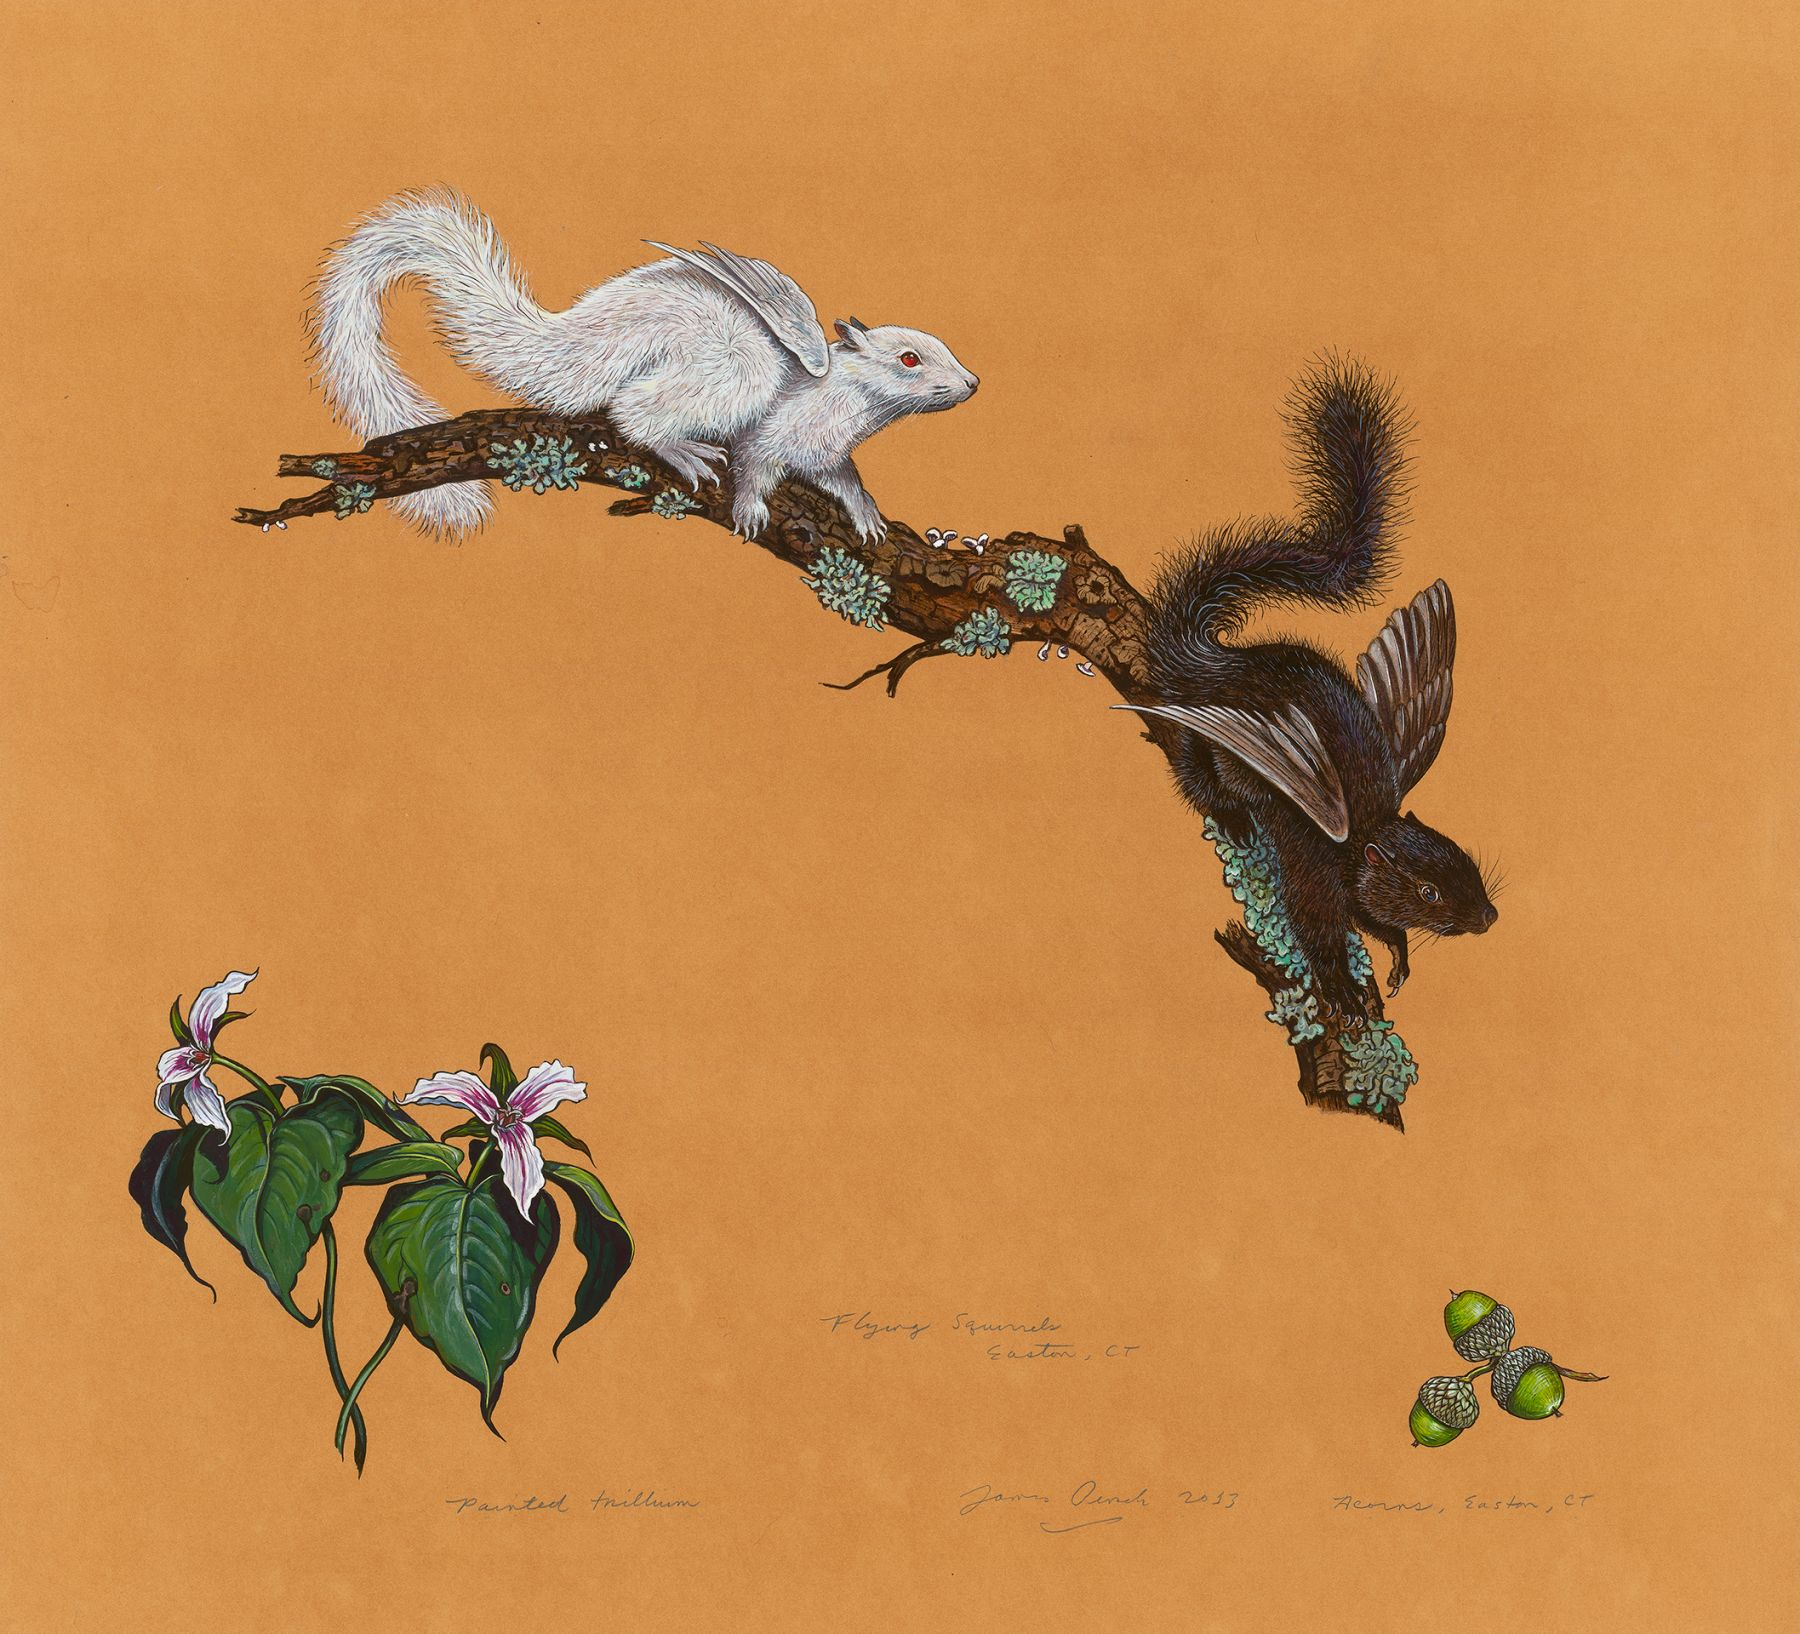 Flying Squirrels, 2013, Watercolor, gouache, colored pencil, and powdered mica on tea-stained paper, 27 3/4 x 30 inches